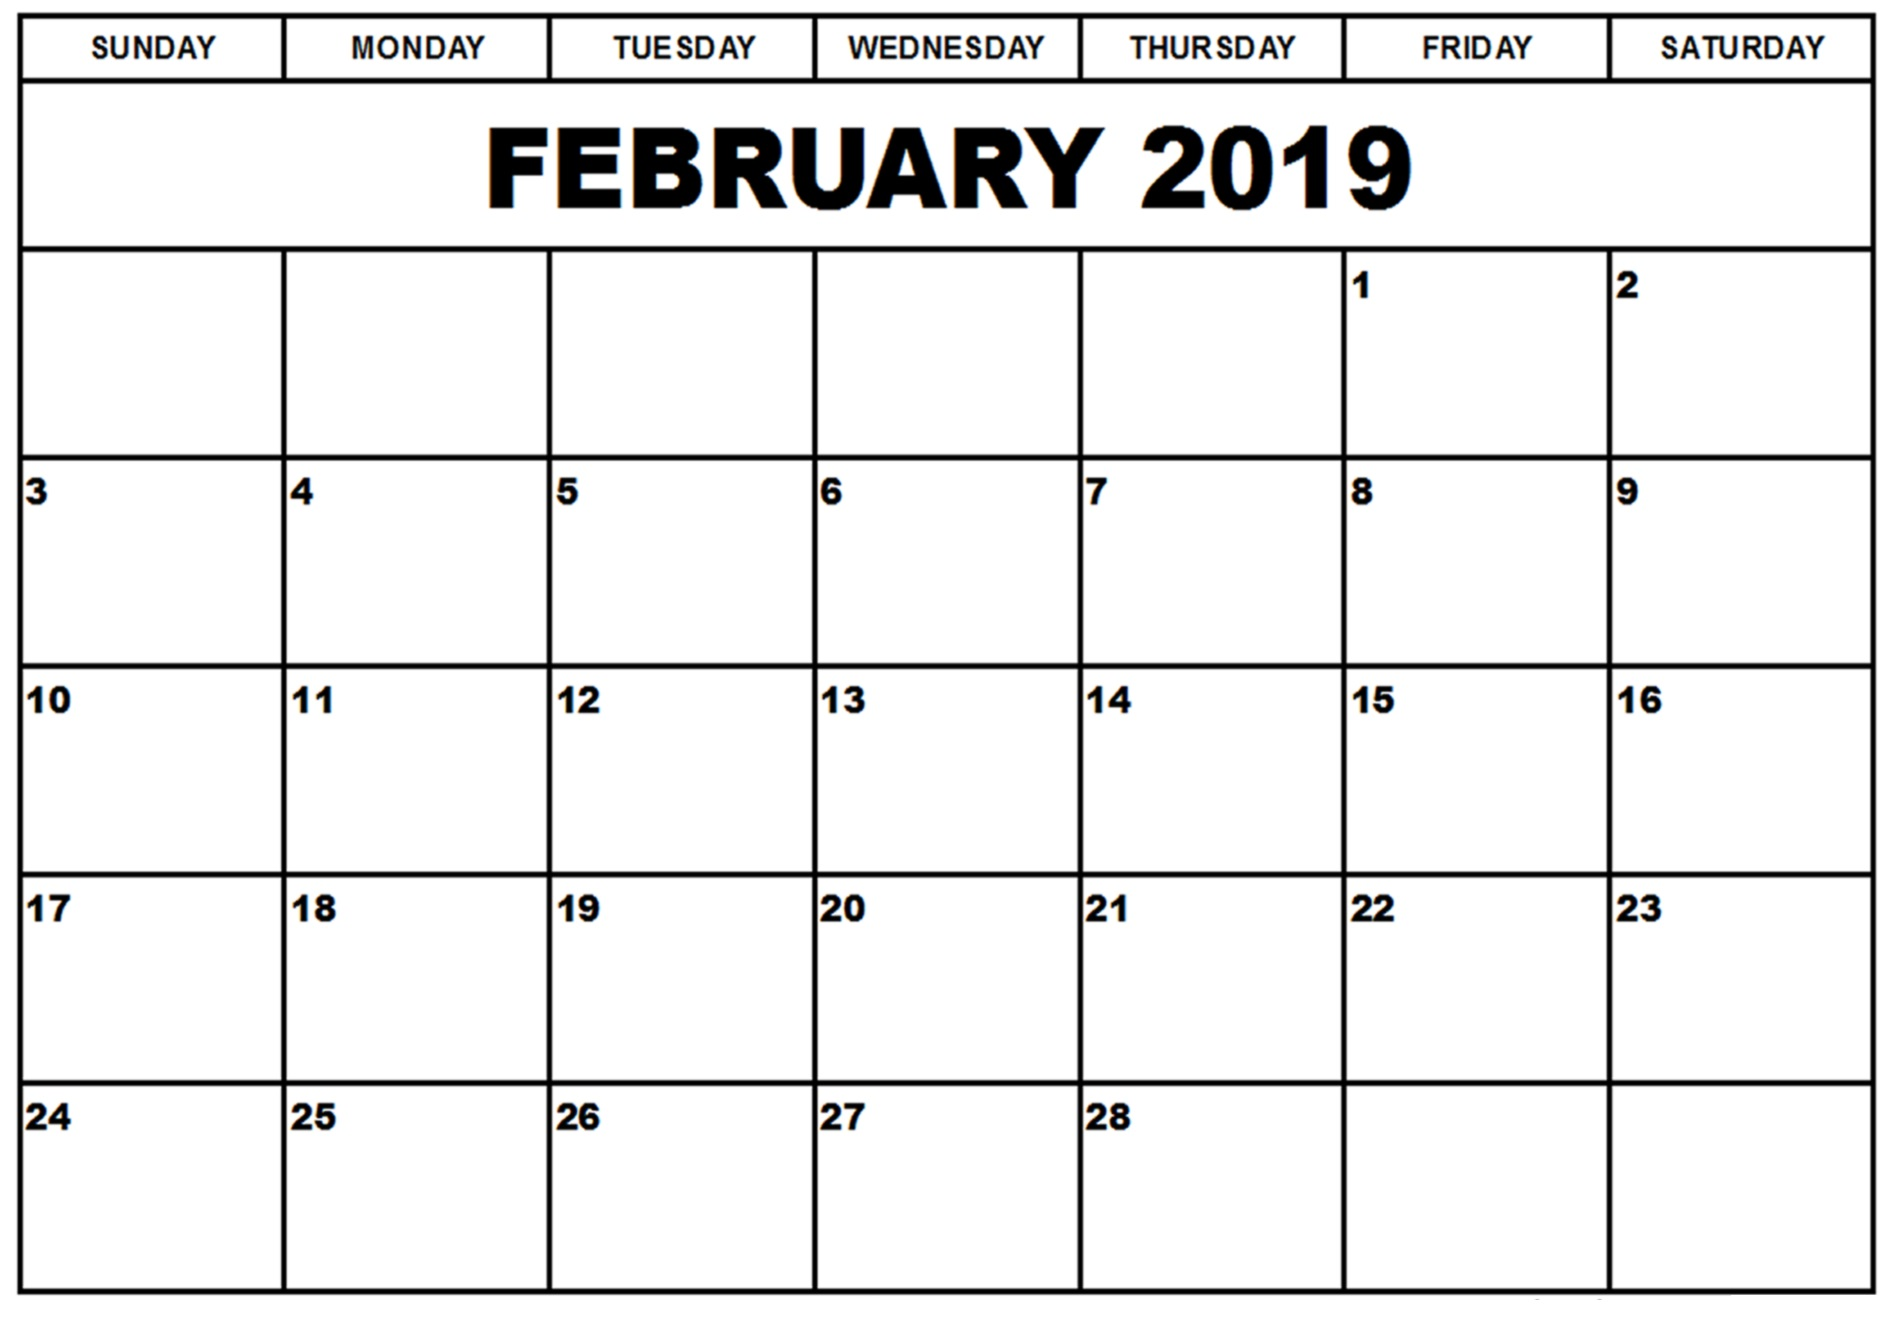 February 2019 Calendar Showing Only Fridays February 2019 Calendar Printable   Free Templates   Printable